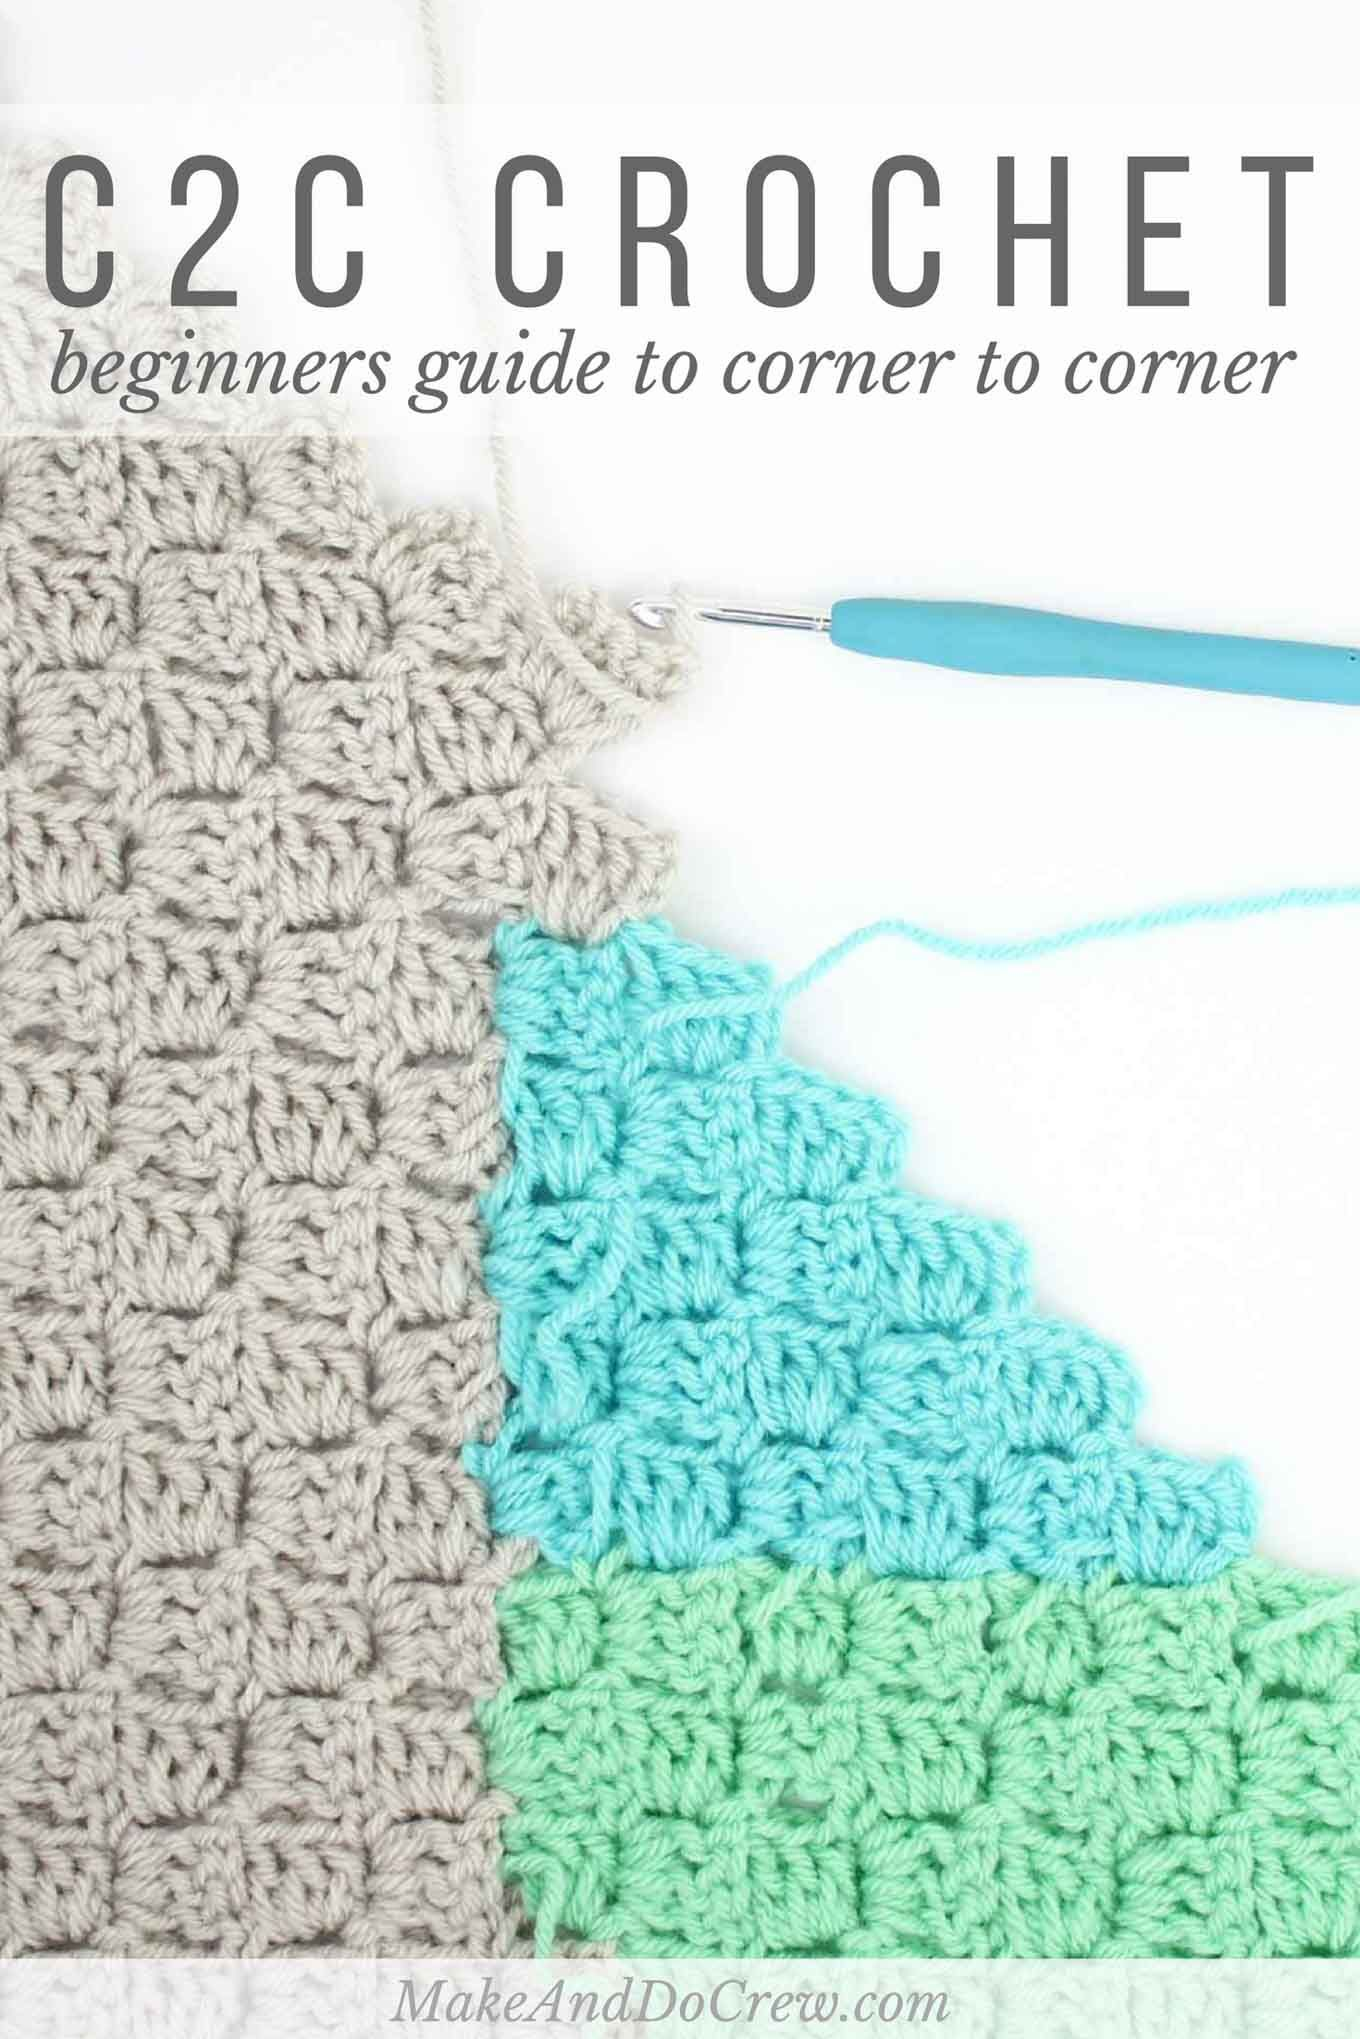 How to Corner to Corner Crochet (C2C) for Beginners | Chart, Corner ...